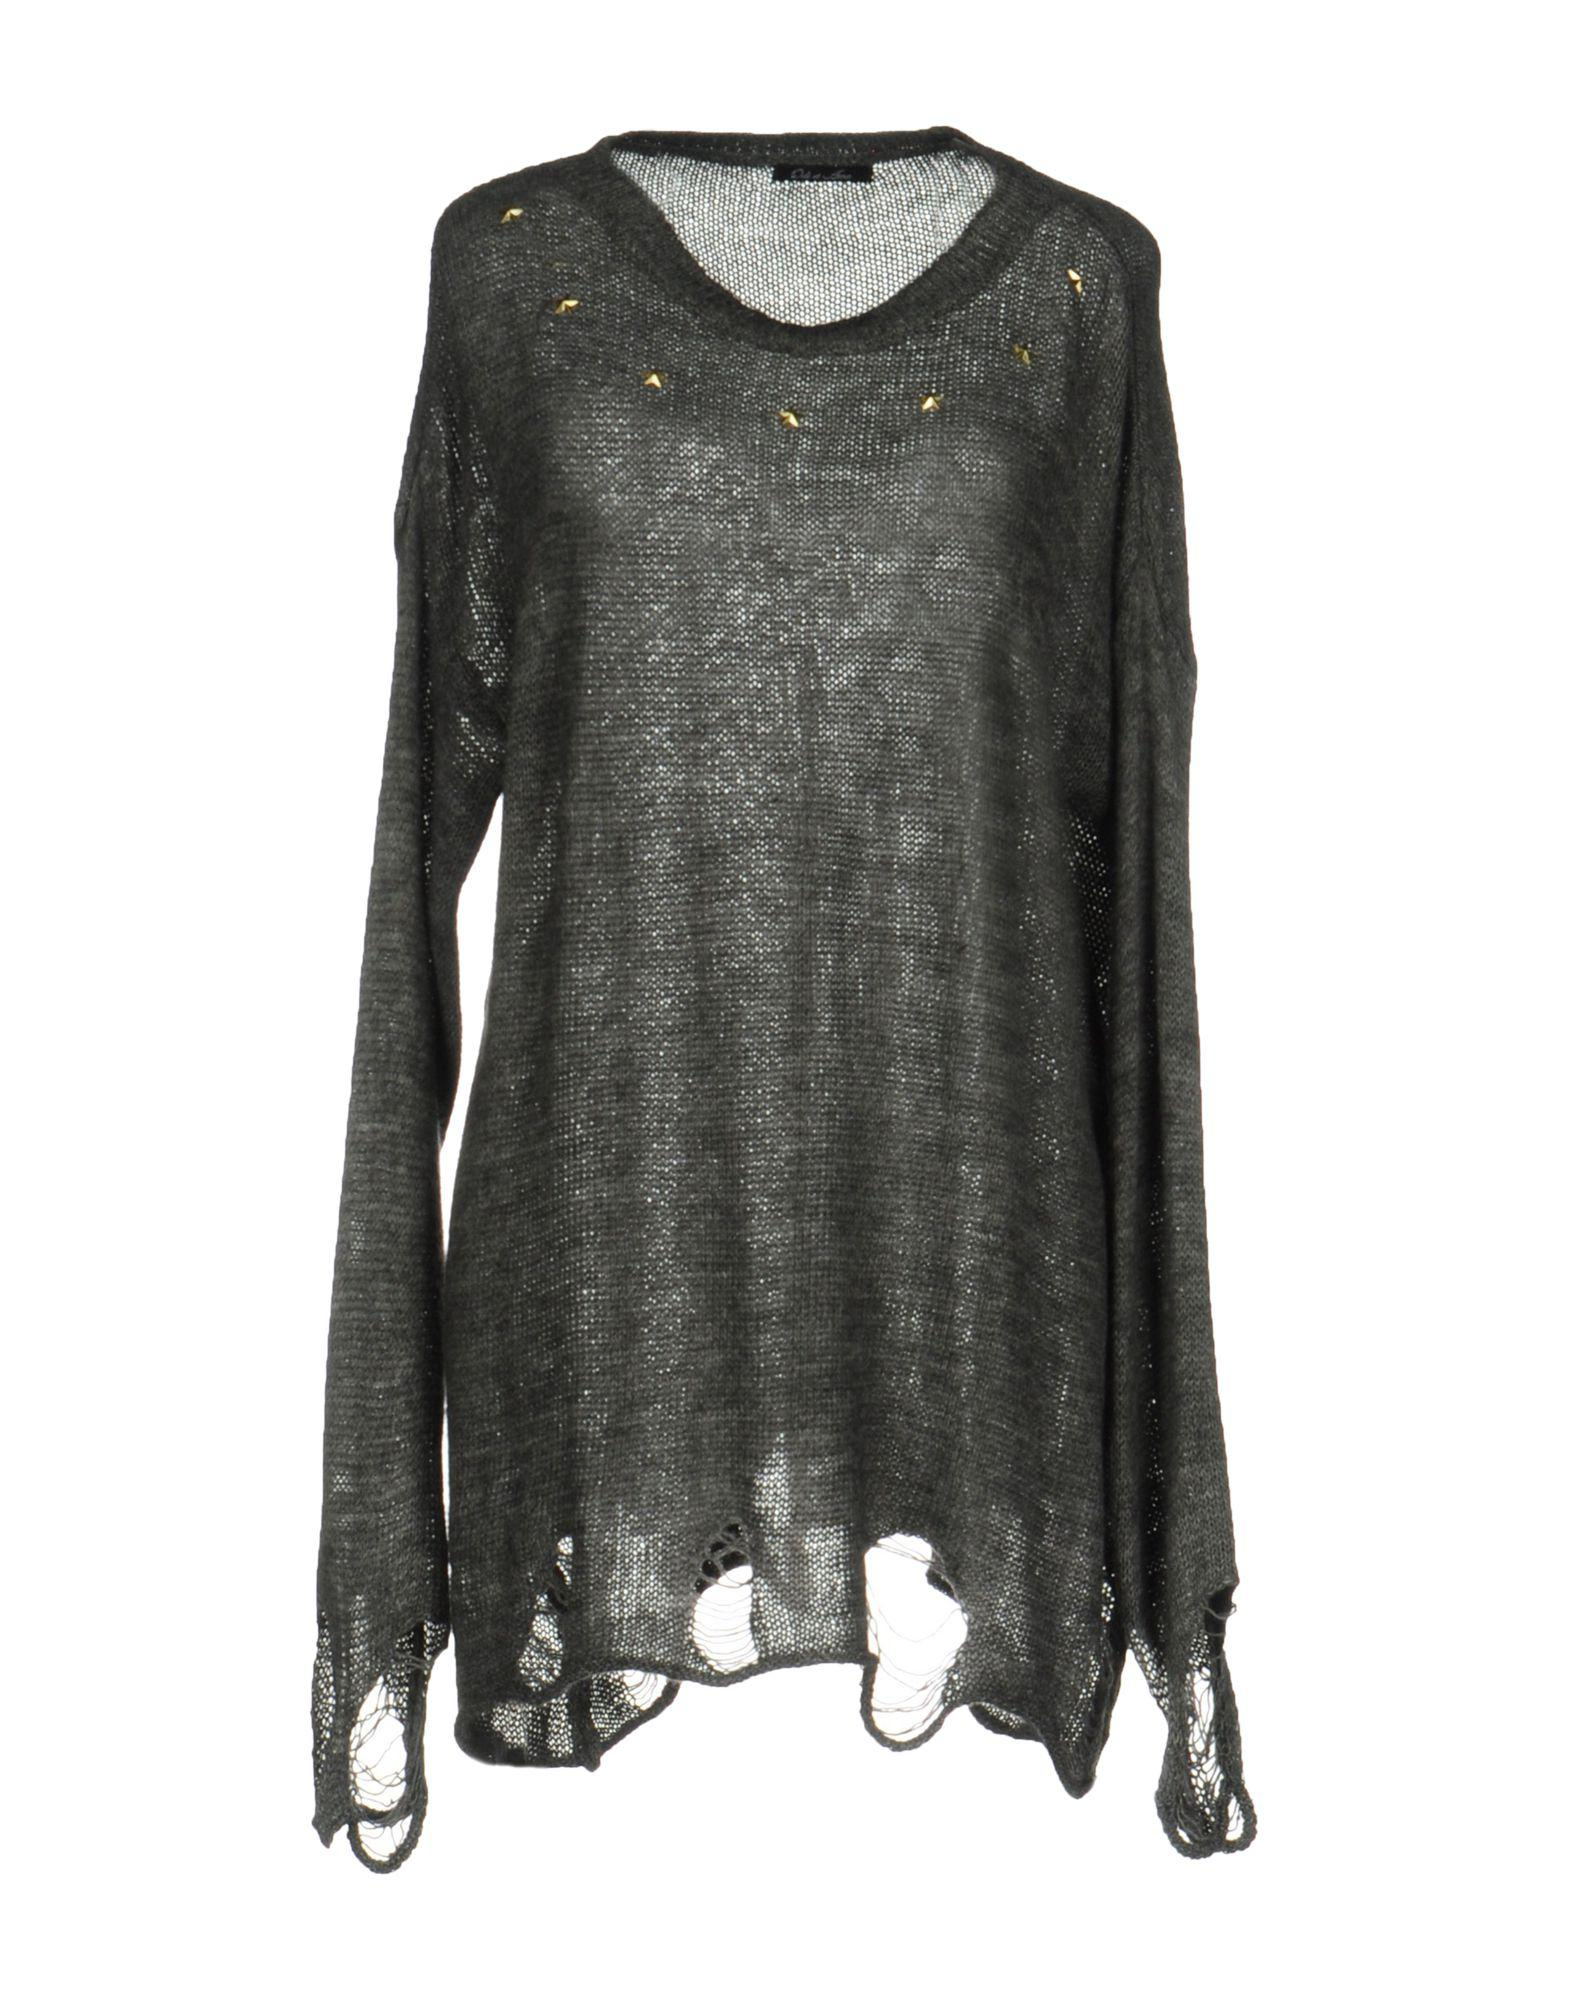 KNITWEAR - Jumpers Odi Et Amo Clearance 100% Authentic 32jFW2i2